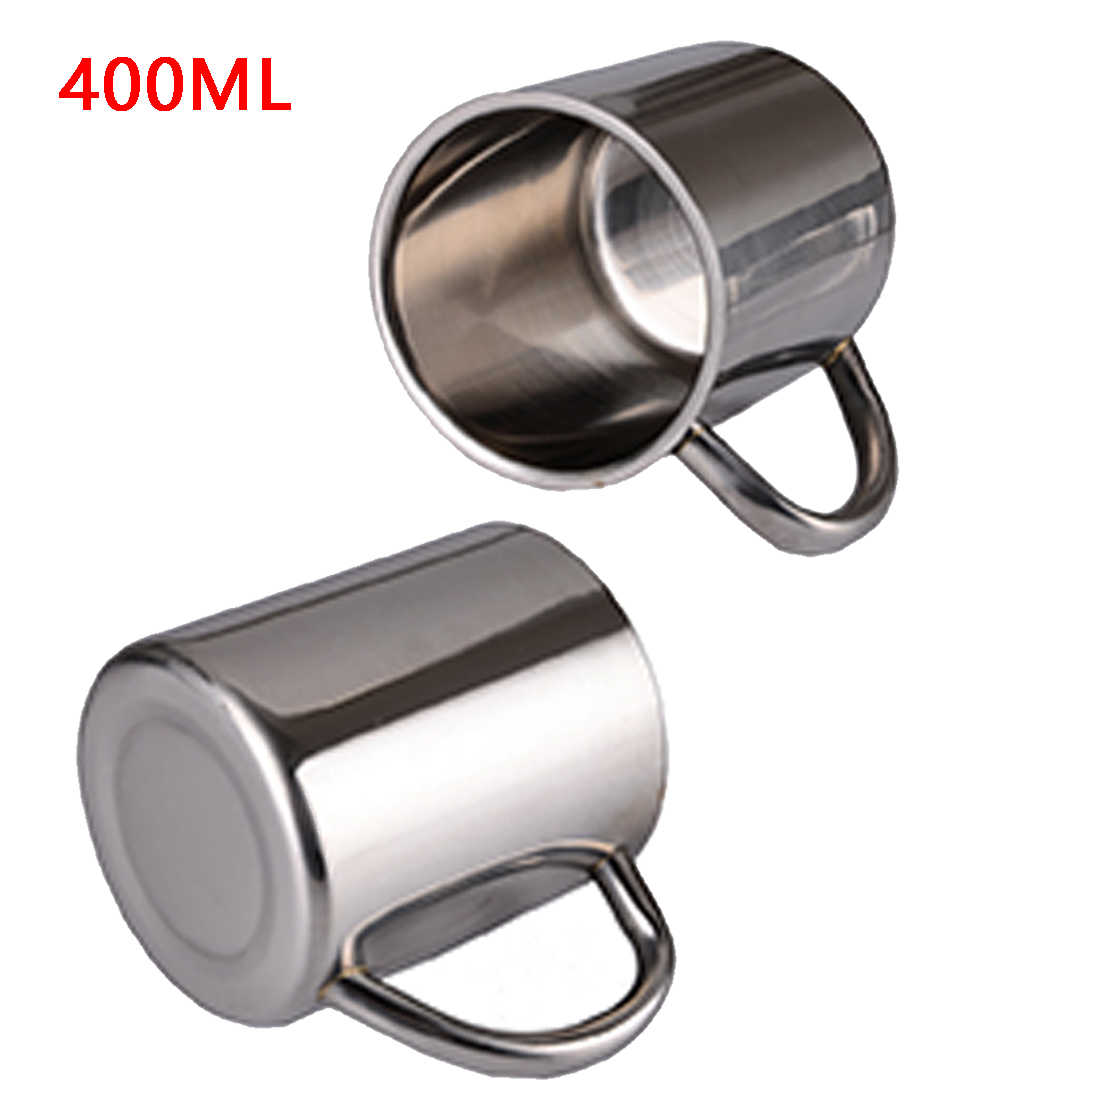 Hot Sale 220ml 300ml 400ml Stainless Steel Portable Mug Cup Double Wall Travel Tumbler Coffee Mug Tea Cup